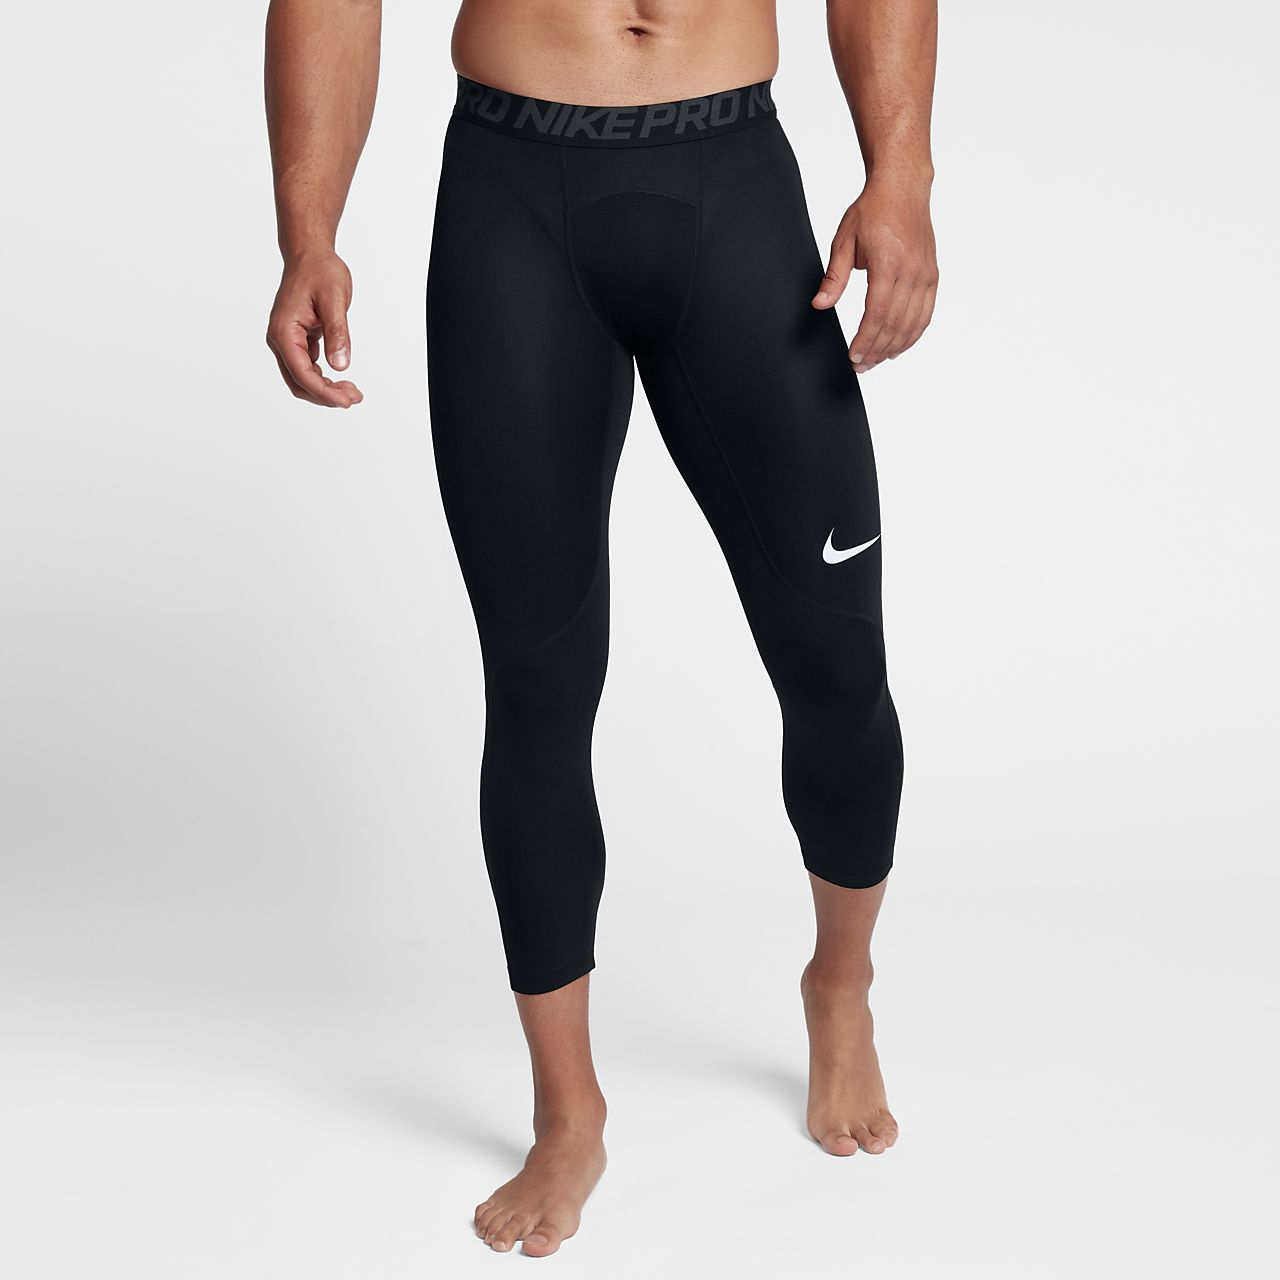 b60fa5975 Nike Pro Men's 3/4 Training Tights. Nike.com GB